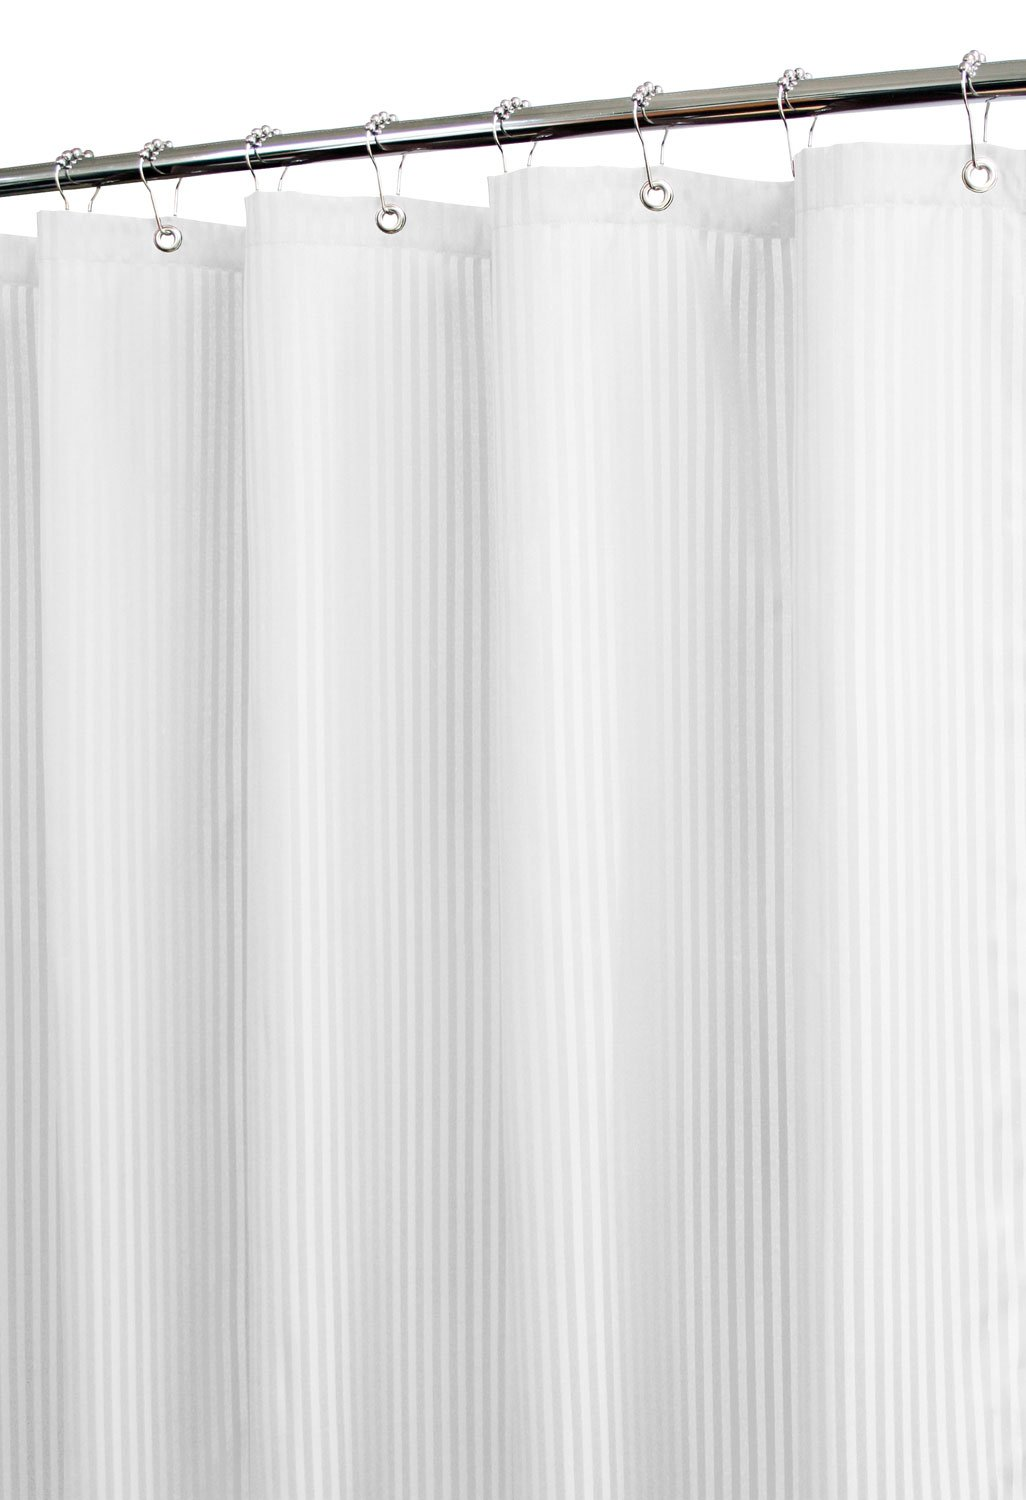 black and white striped shower curtain. Amazon com  Park B Smith Satin Stripe Shower Curtain with Hooks White Home Kitchen